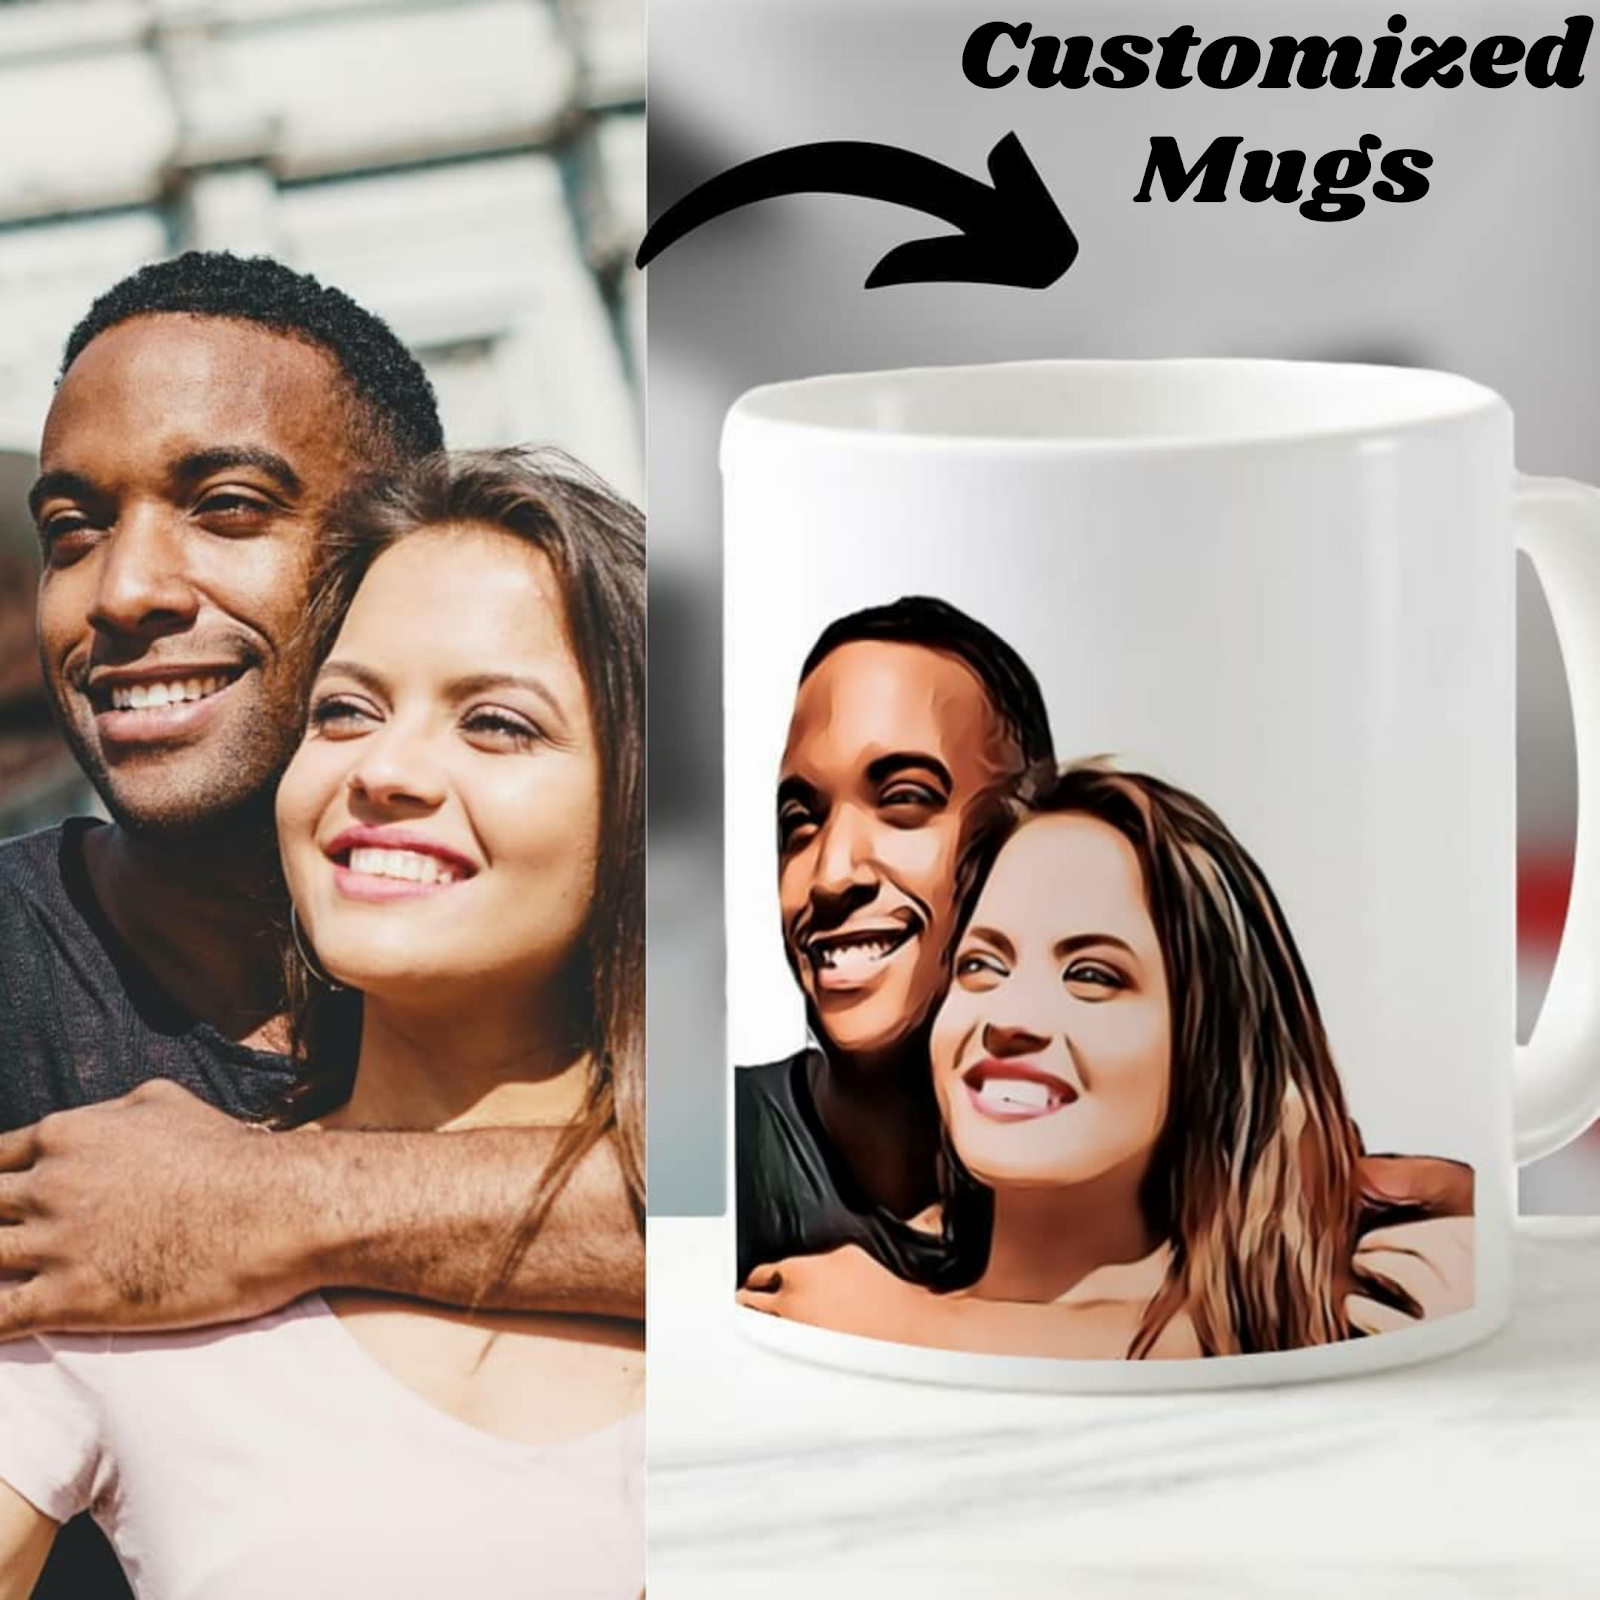 Looking For A Creative Gift Order Personalized Mugs From Giftshift By Tanushree Kodukula Giftshift Medium